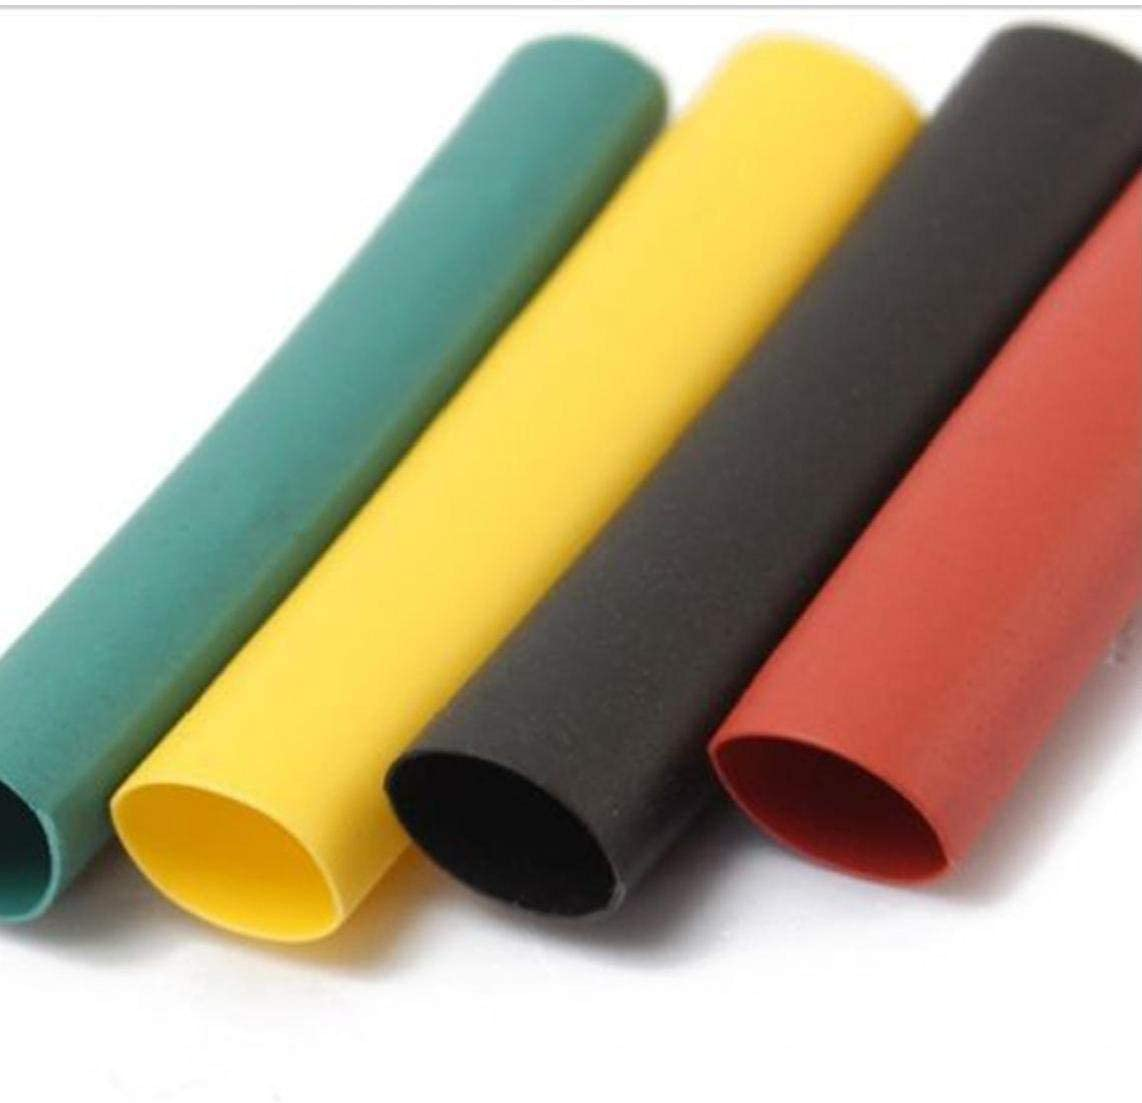 OMMO LEBEINDR Heat-shrink Tubing Wire Protector Dual Wall Adhesive Heat Shrink 1 Set Colorful Tube Sets 328Pcs